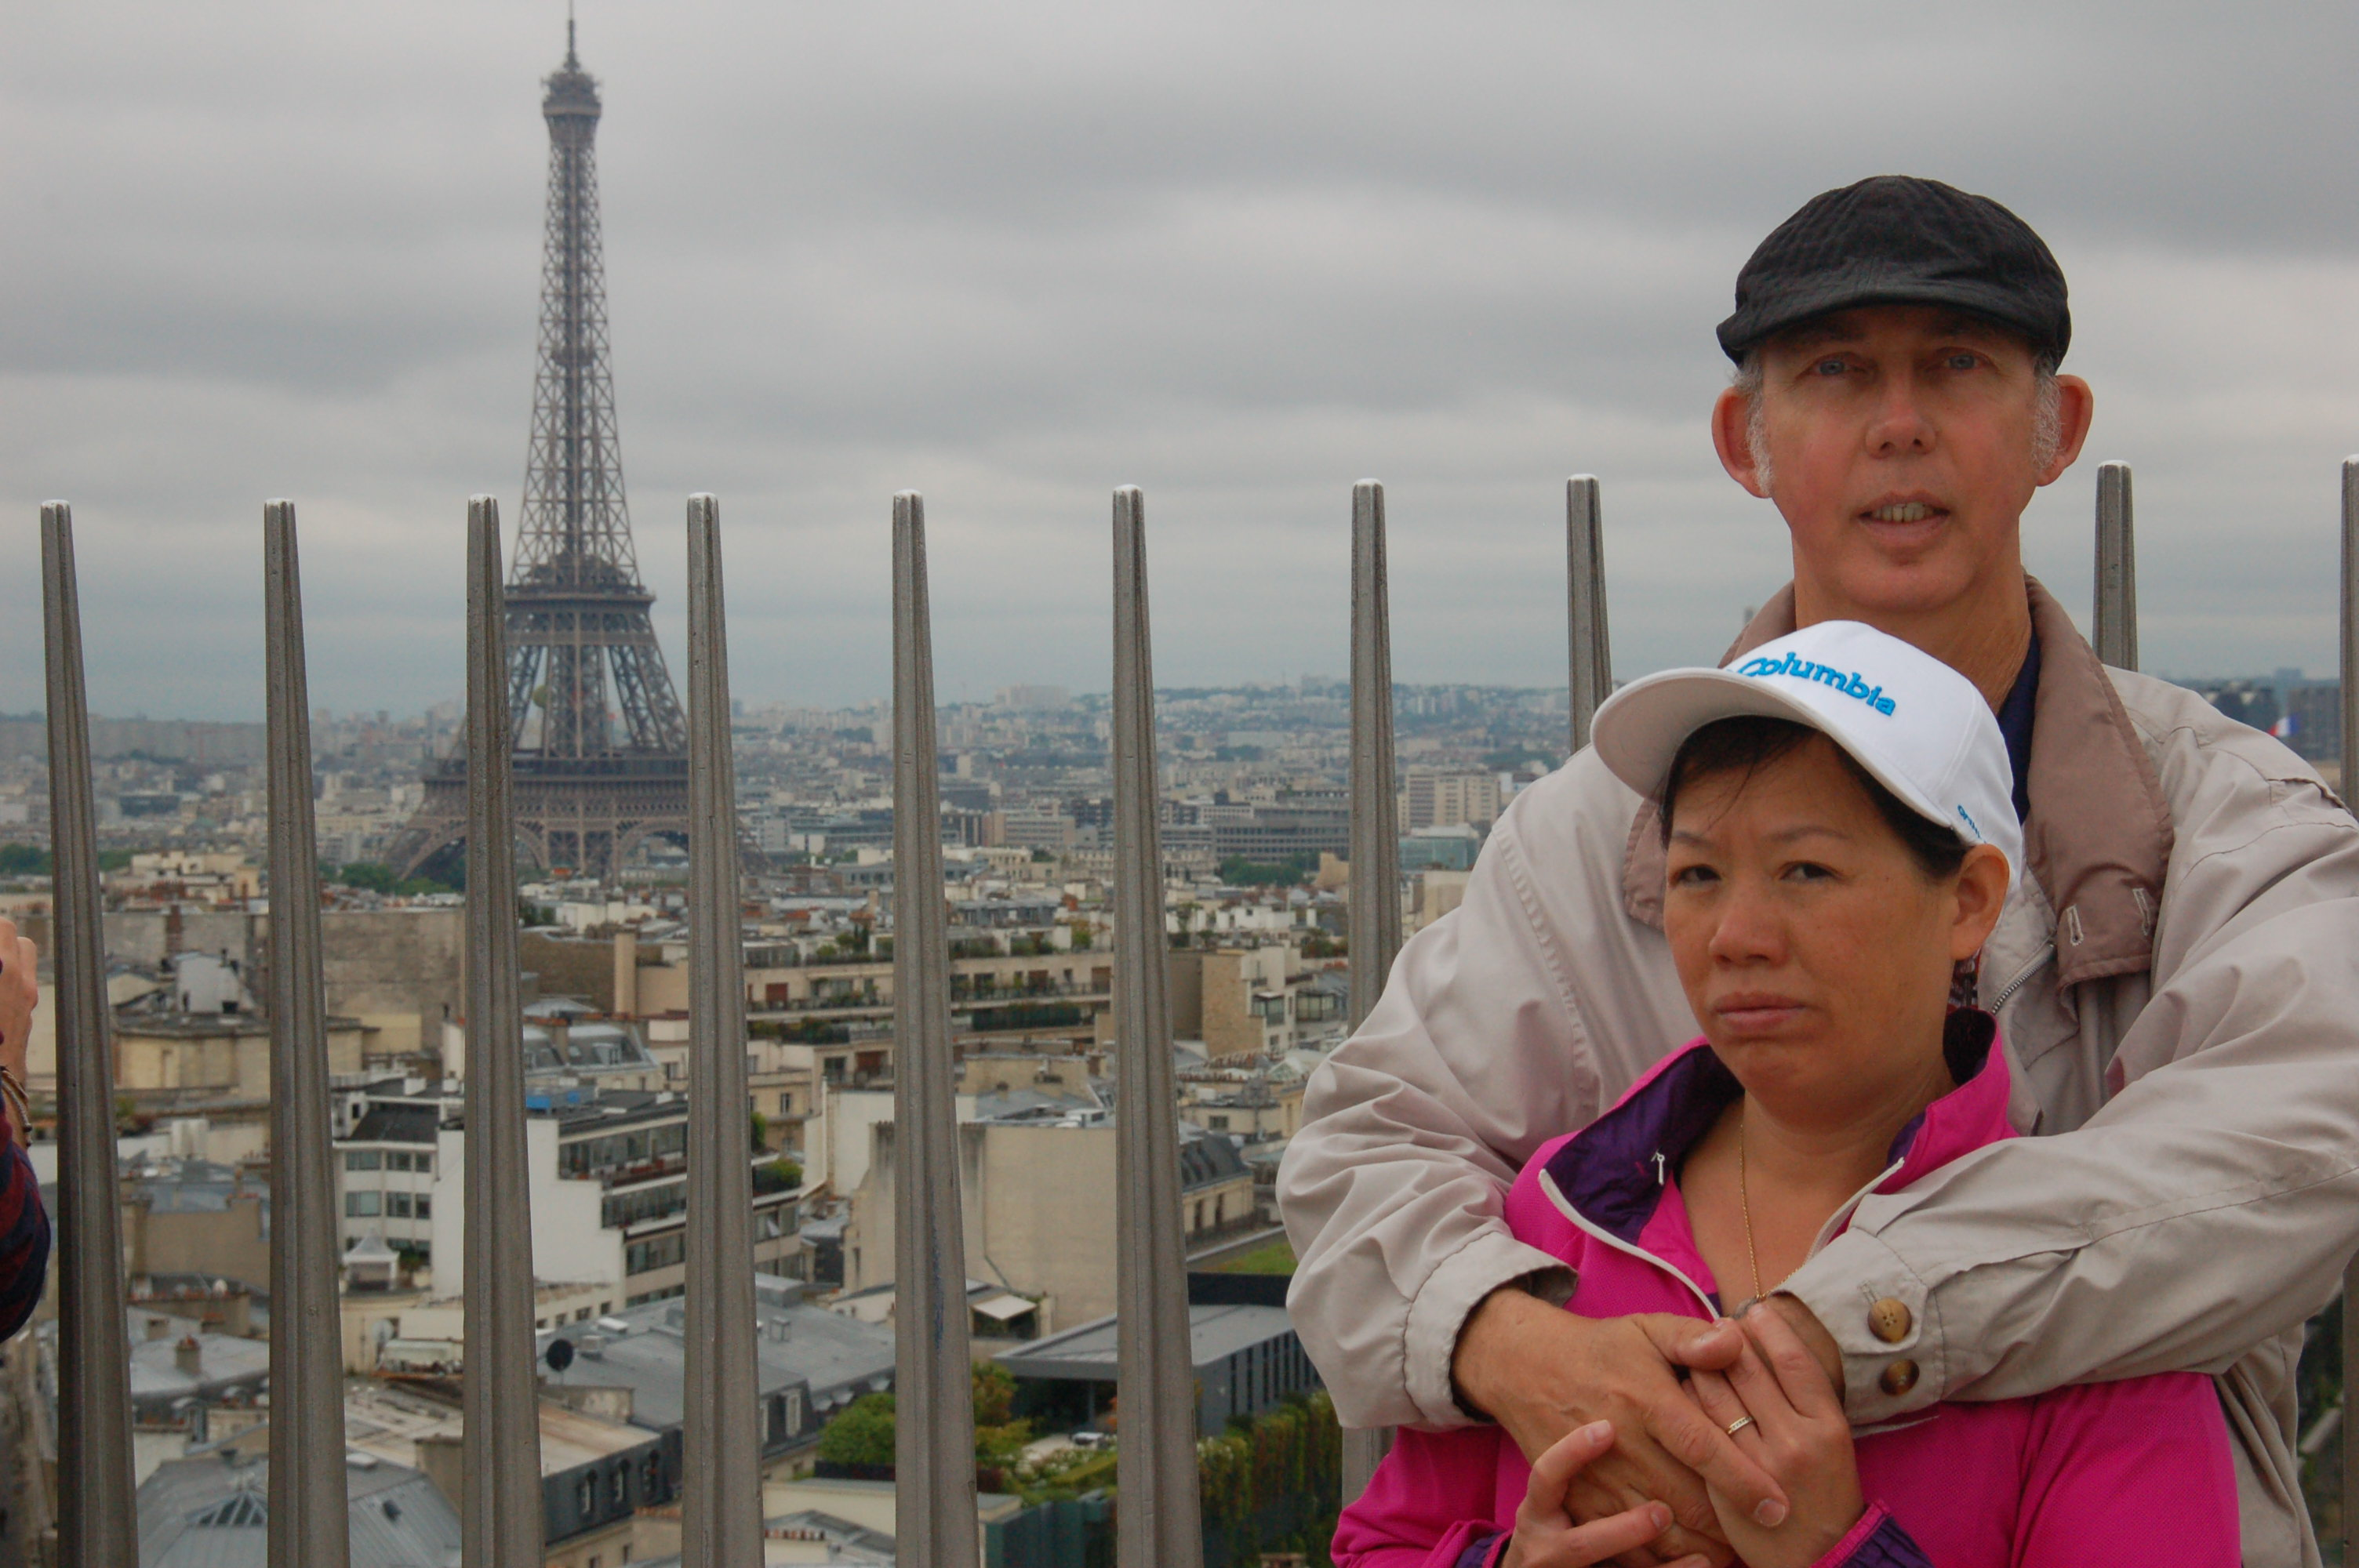 Ron and Winnie On the Eiffel Tower, Paris, France